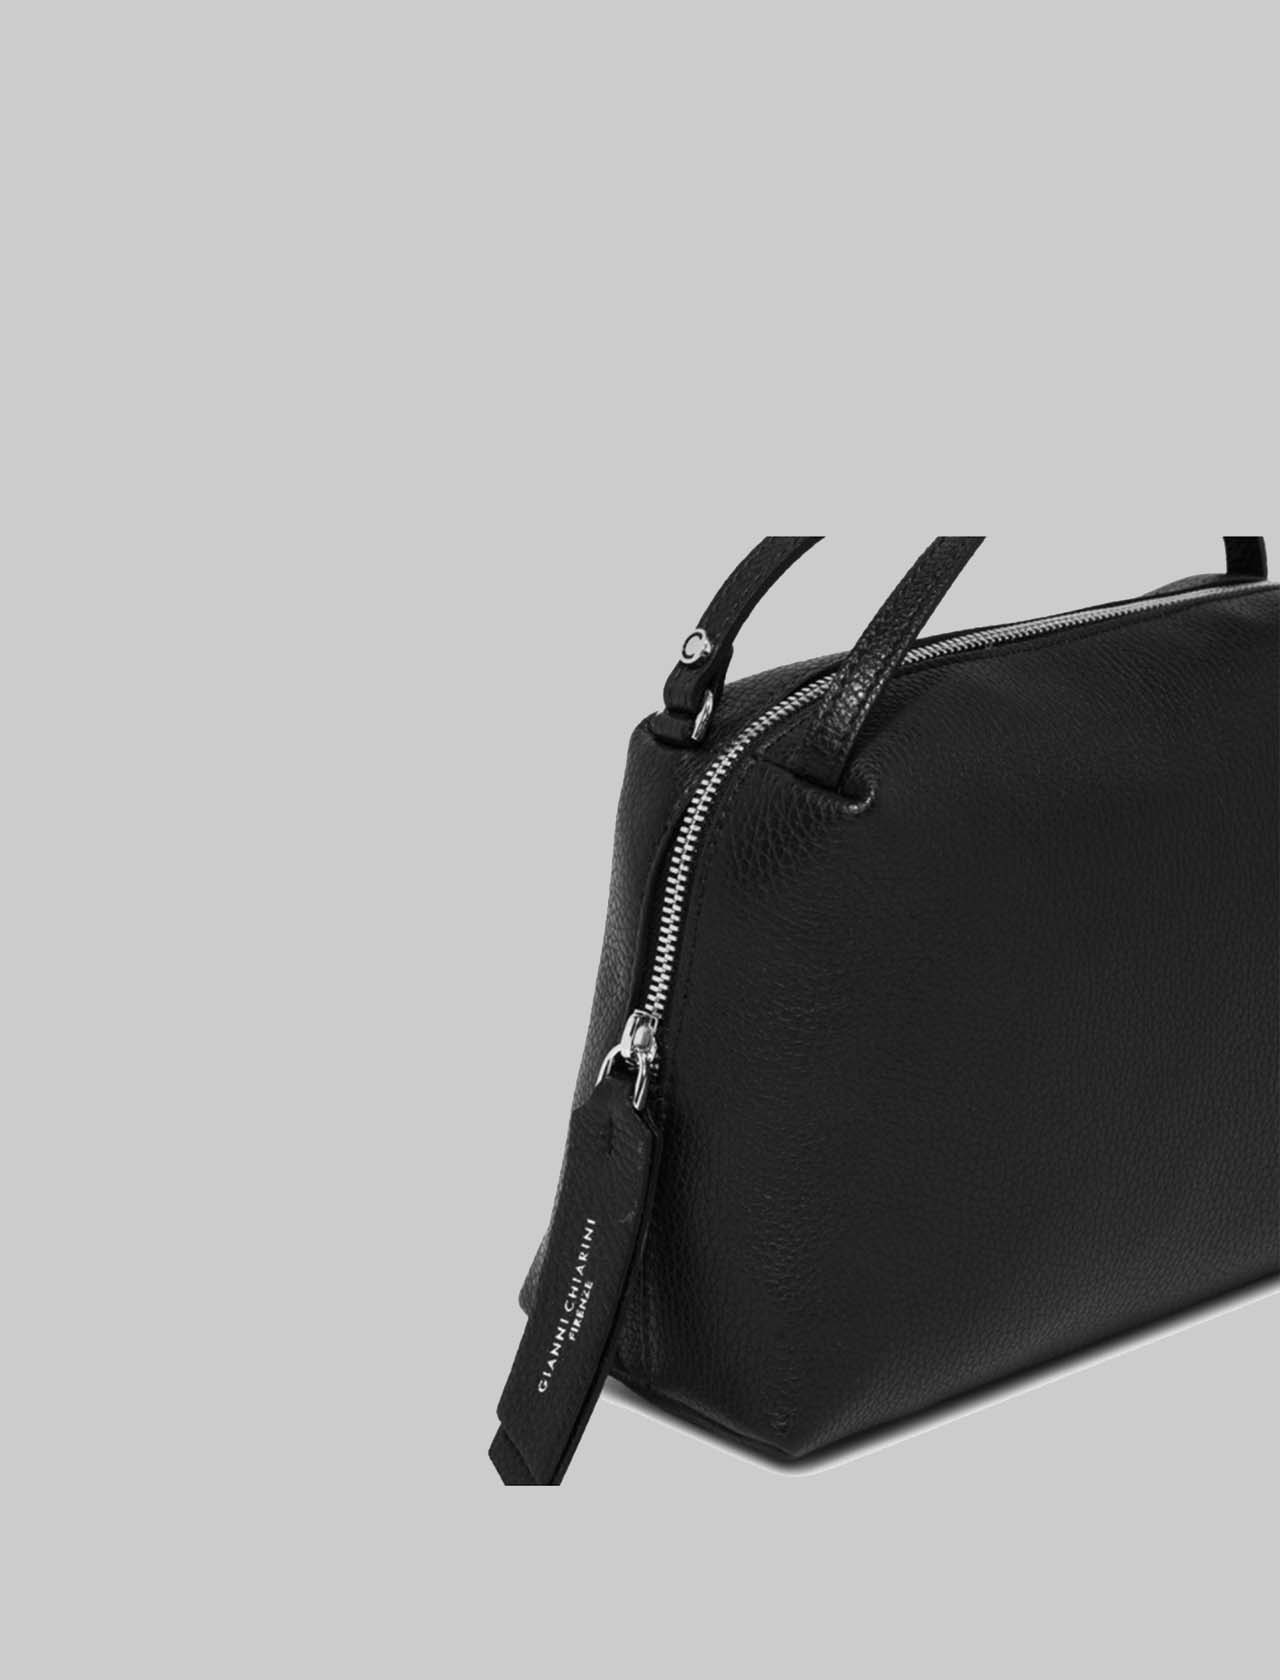 Alifa Woman's Bag in Black Leather with Double Hand Handle and Removable Shoulder Strap Gianni Chiarini | Bags and backpacks | BS8148001